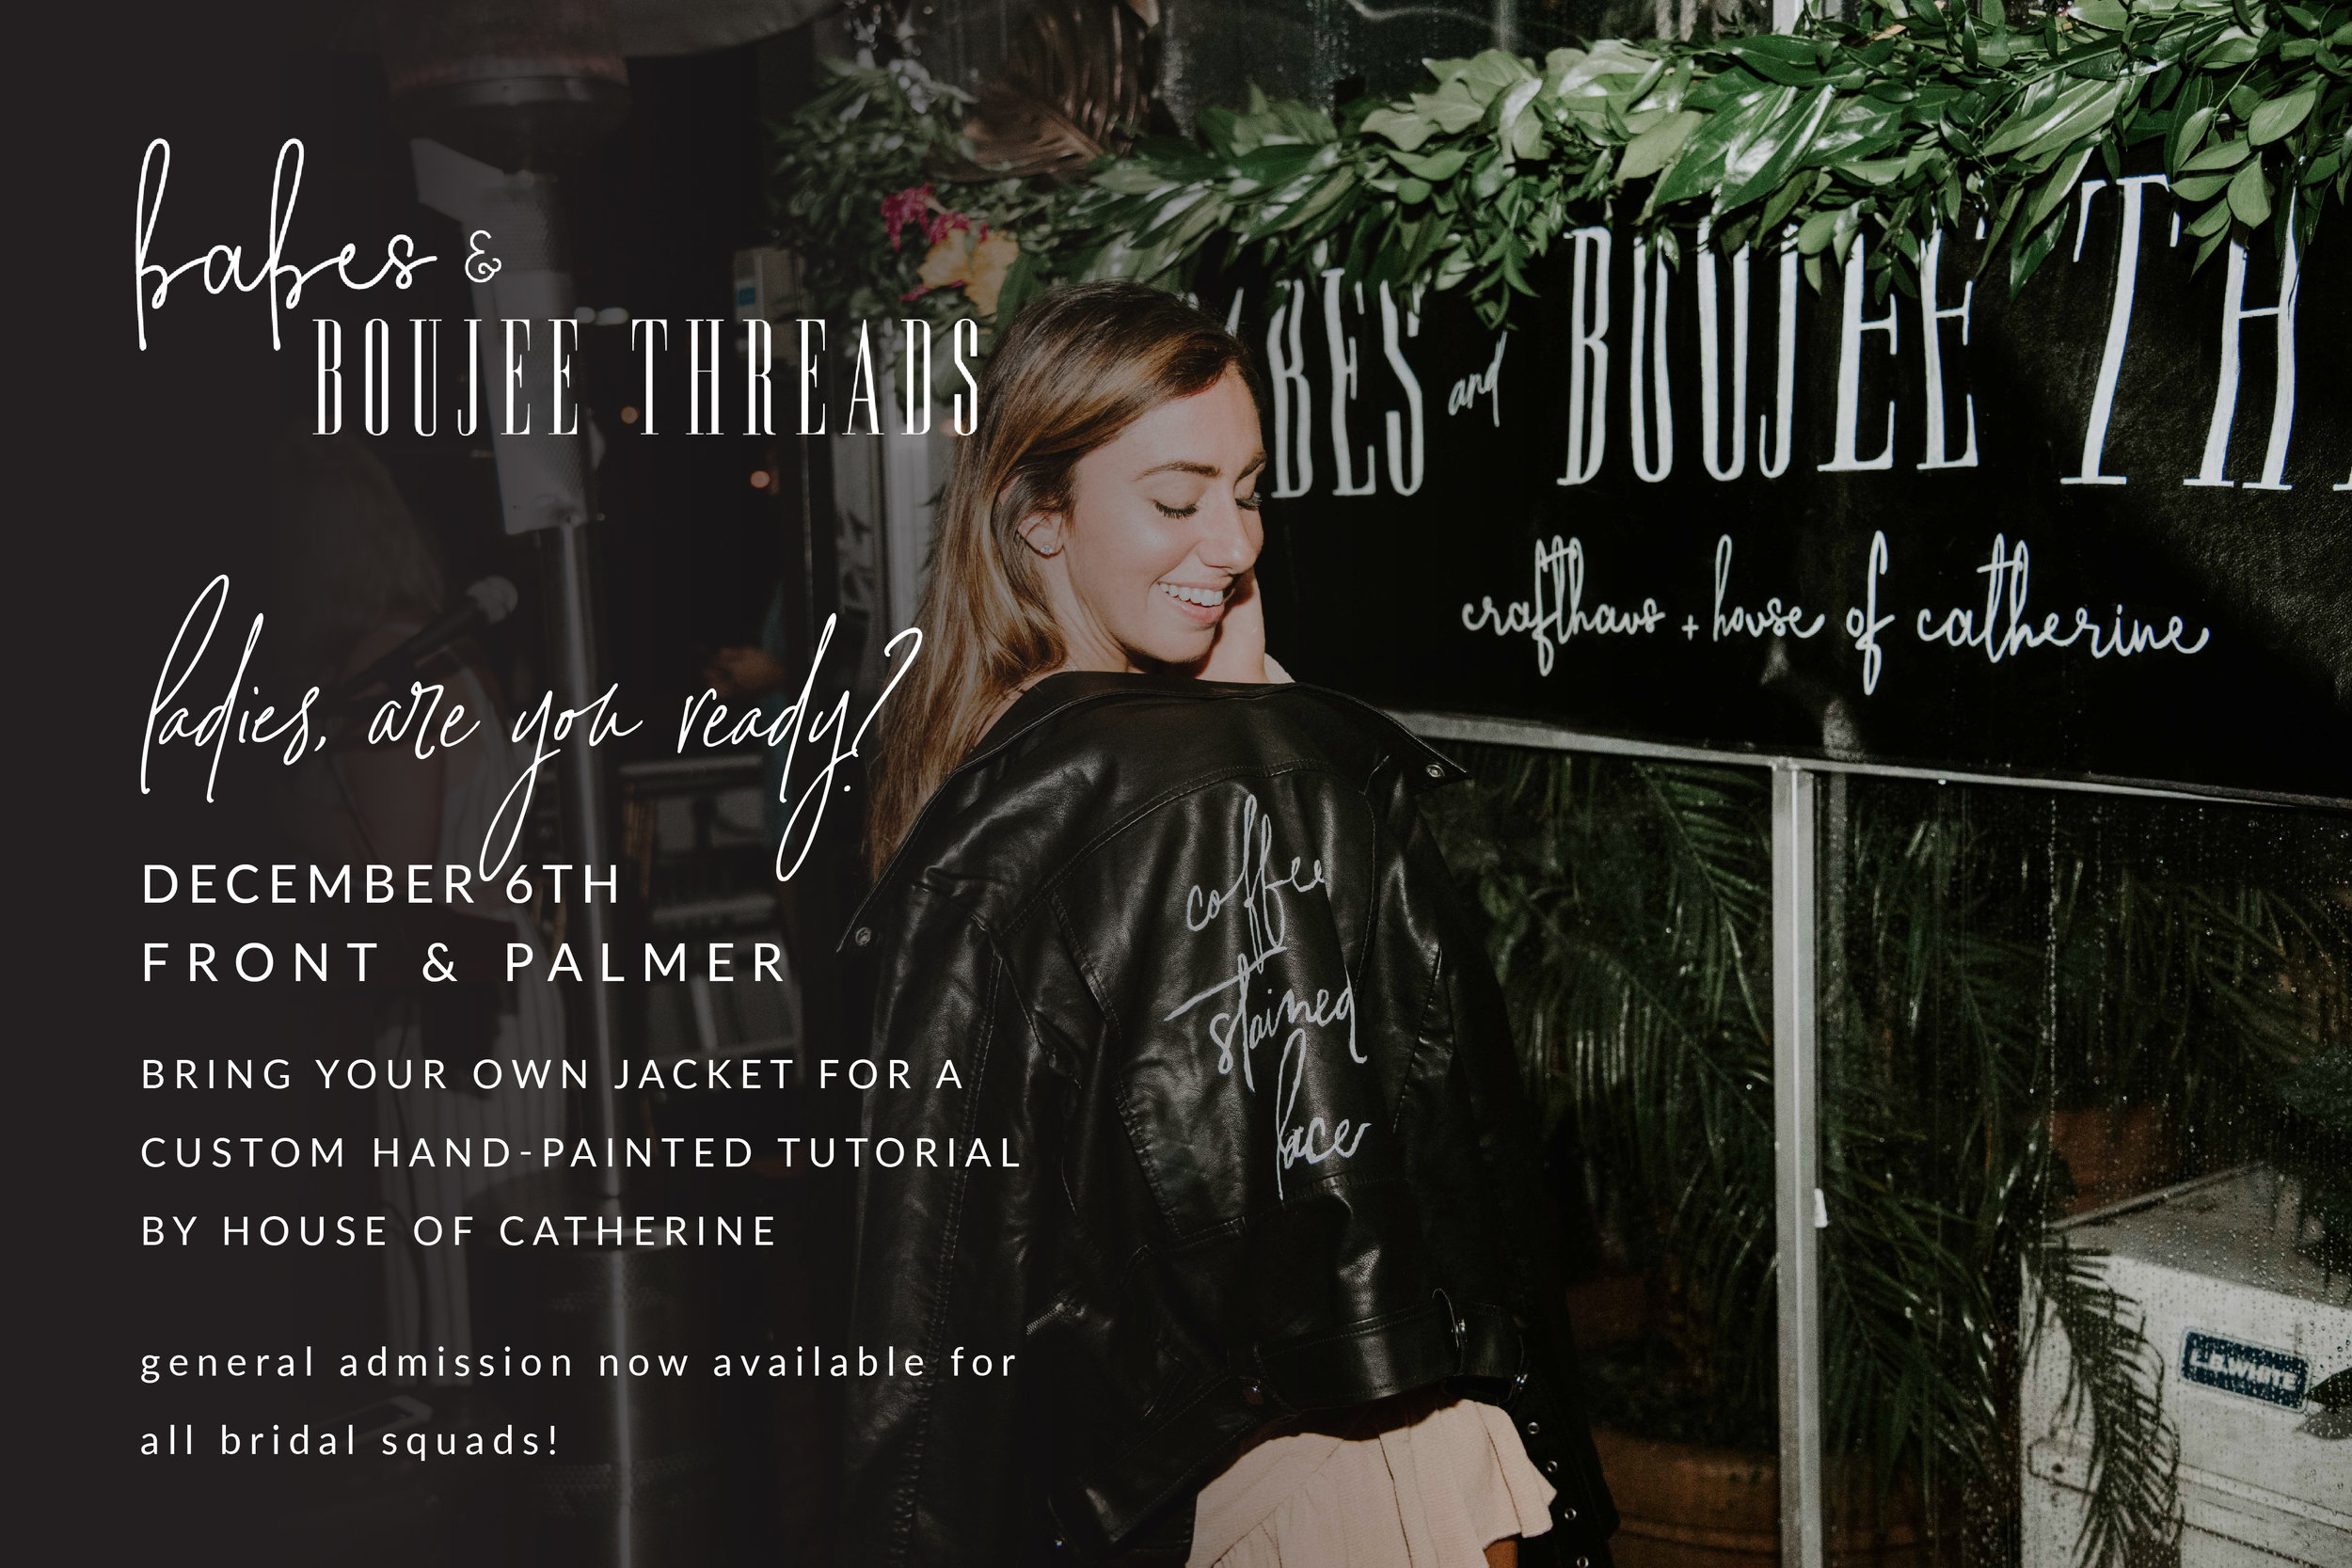 Red Oak Weddings Events | Babes + Boujee Threads